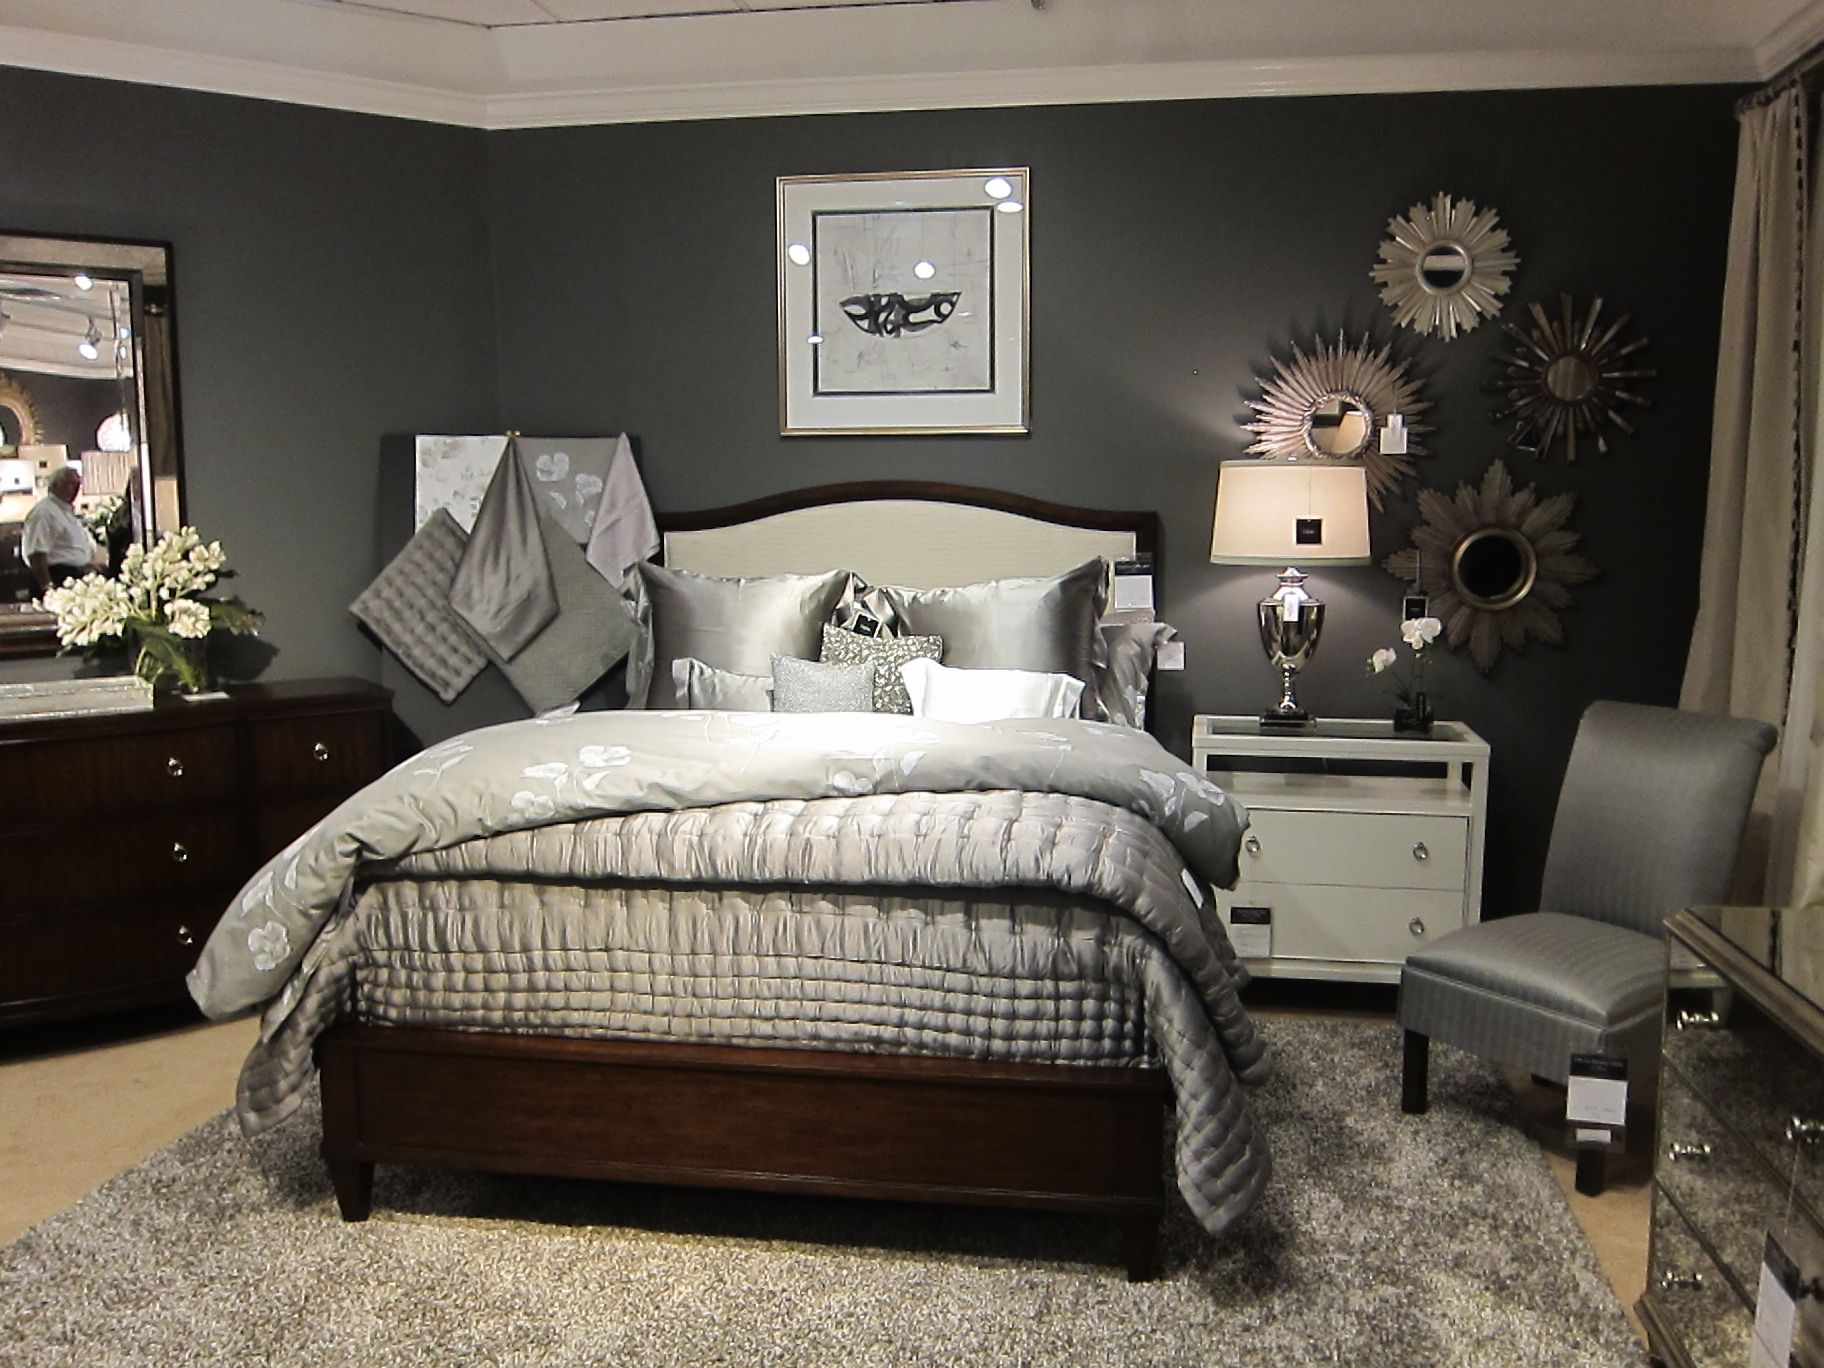 Benjamin moore iron mountain paint in our ethan allen Best gray paint for bedroom benjamin moore